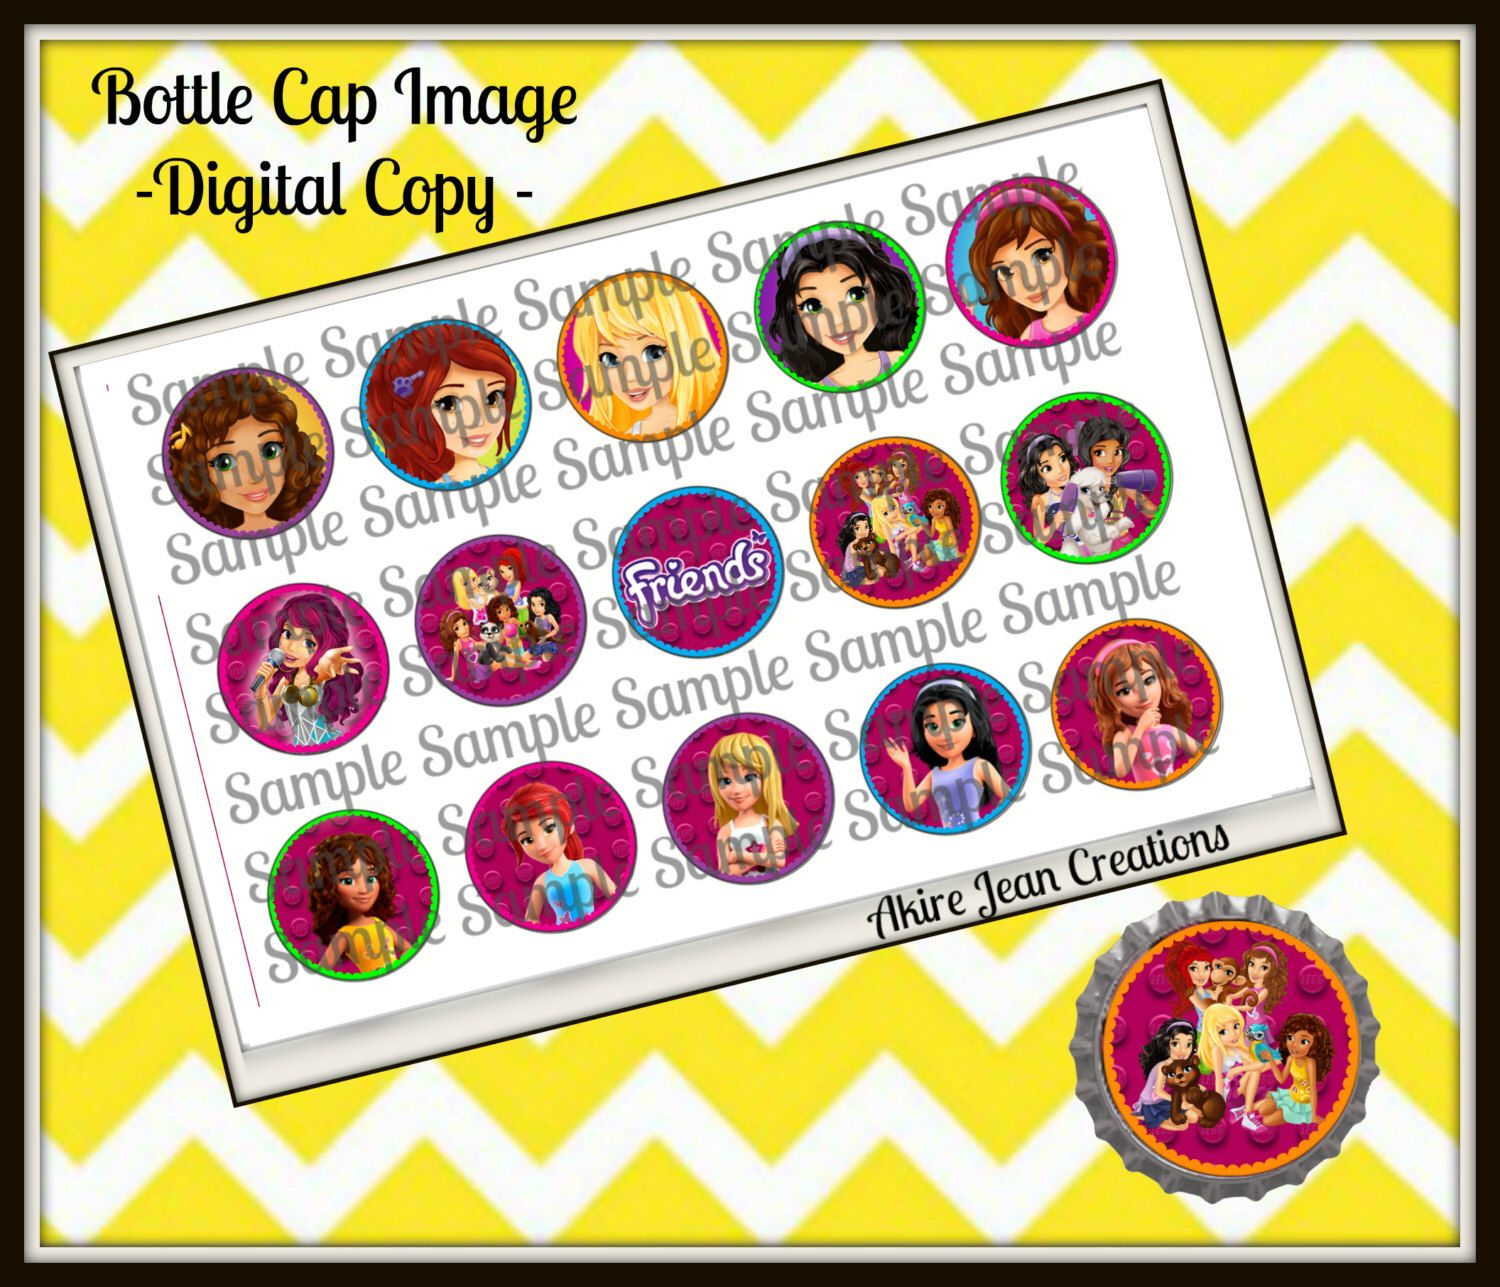 Lego Friends  -INSTANT DOWNLOAD - Bottle cap Images - Cake toppers - Bow Center- Shimmer and Shine by AkireJeanCreations on Etsy https://www.etsy.com/listing/262318643/lego-friends-instant-download-bottle-cap